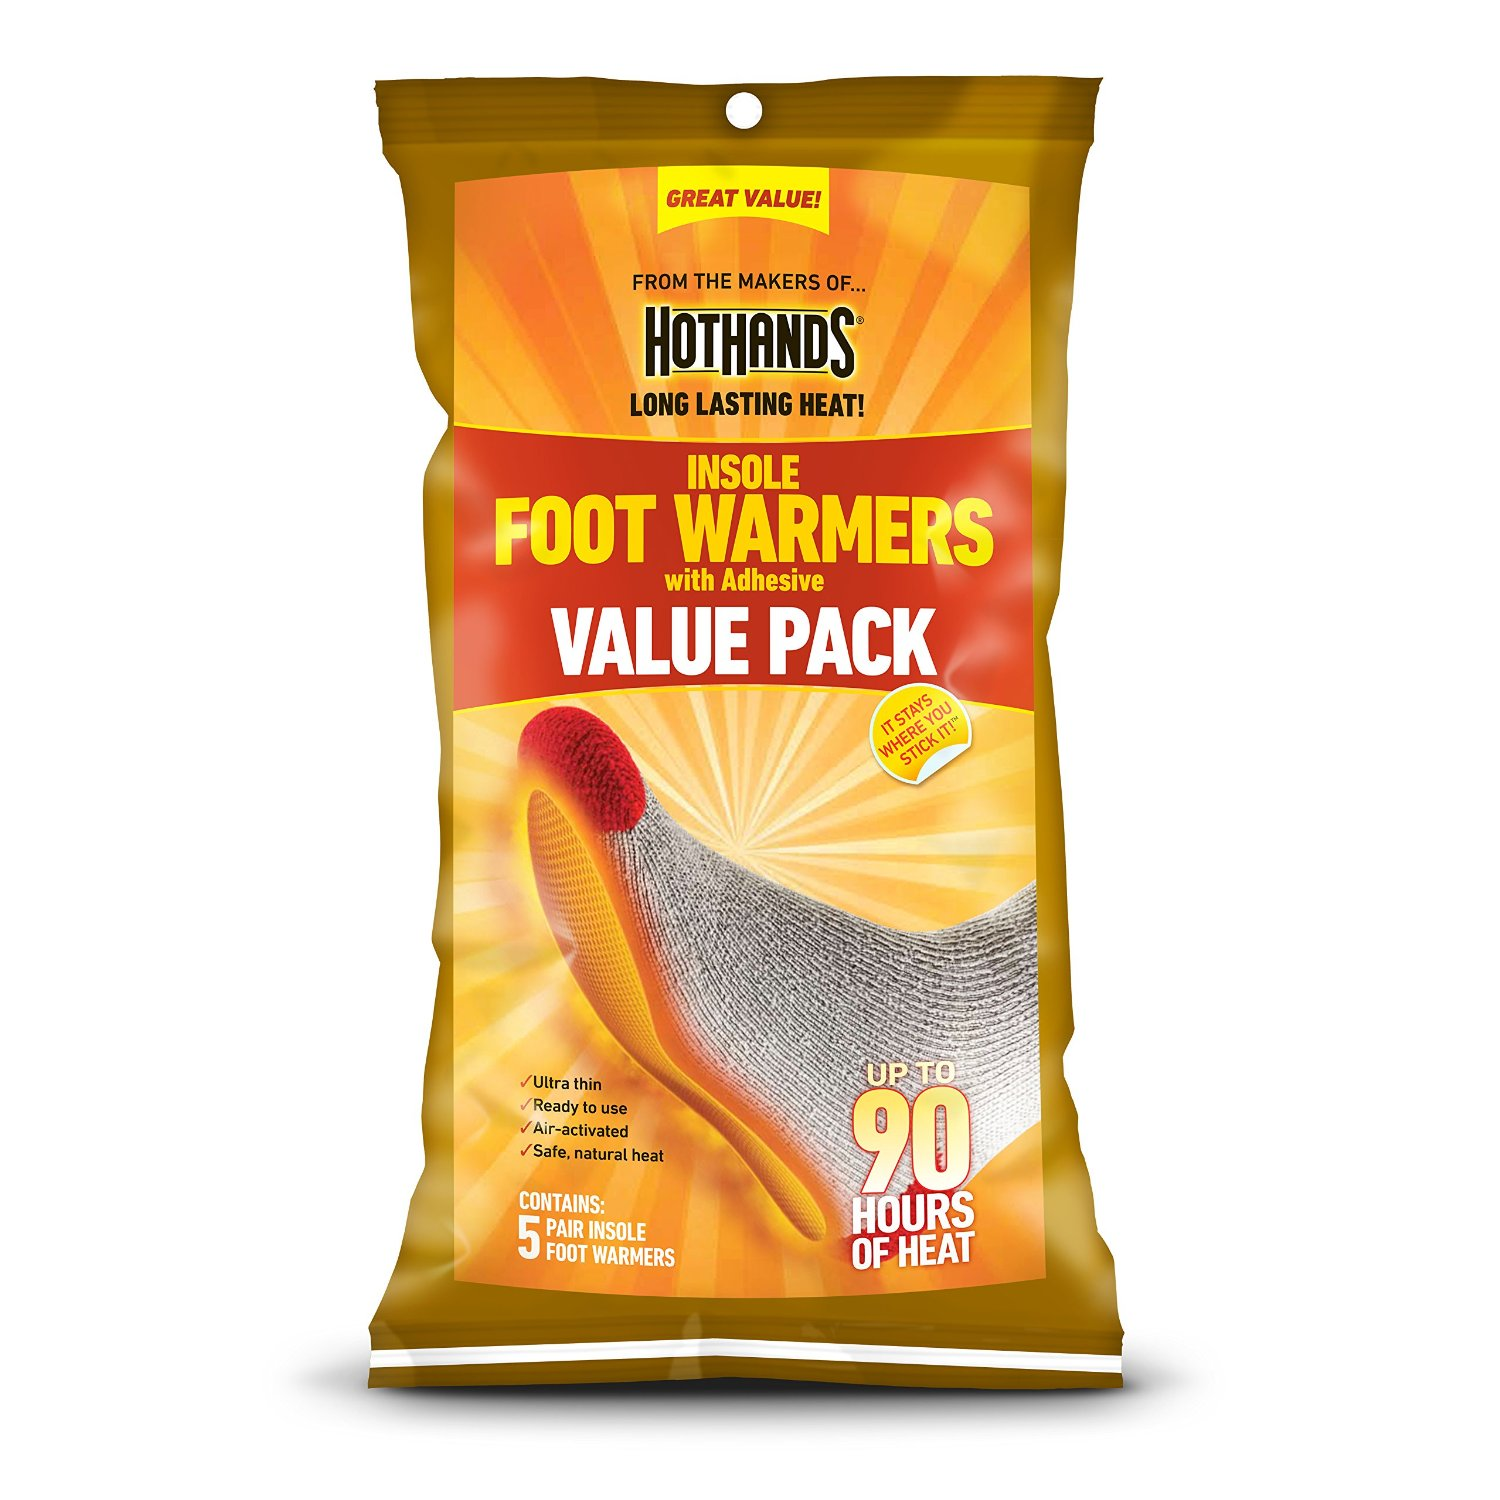 Adhesive 5 Pairs EXTRA WARM THE HEAT COMPANY Insole Foot Warmers Adhesive